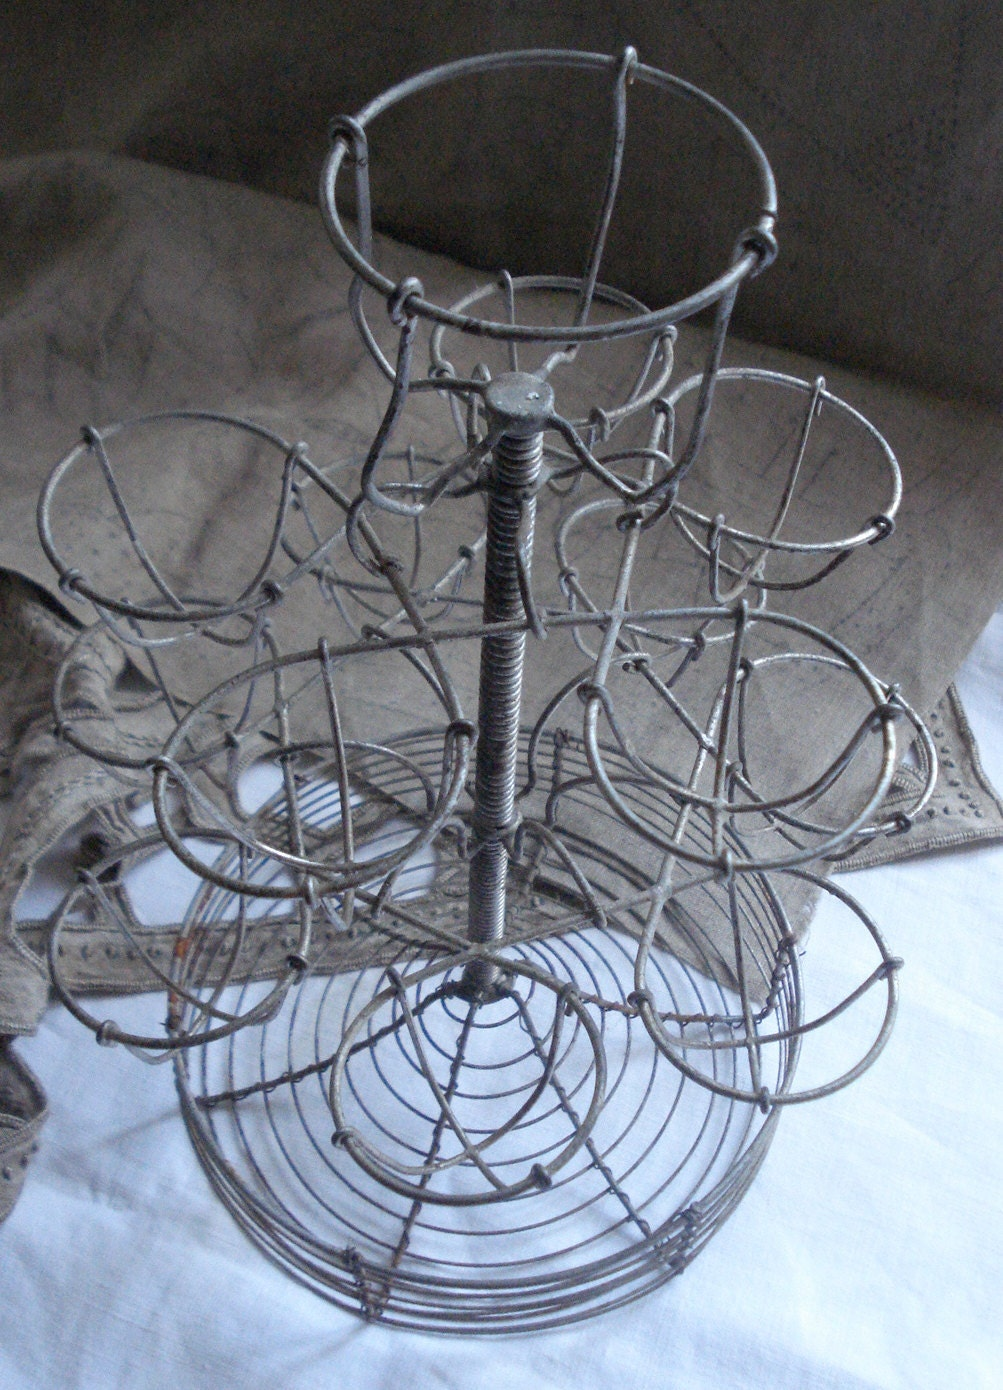 Vintage French Bistro Metal Wire Eggs Stand Display